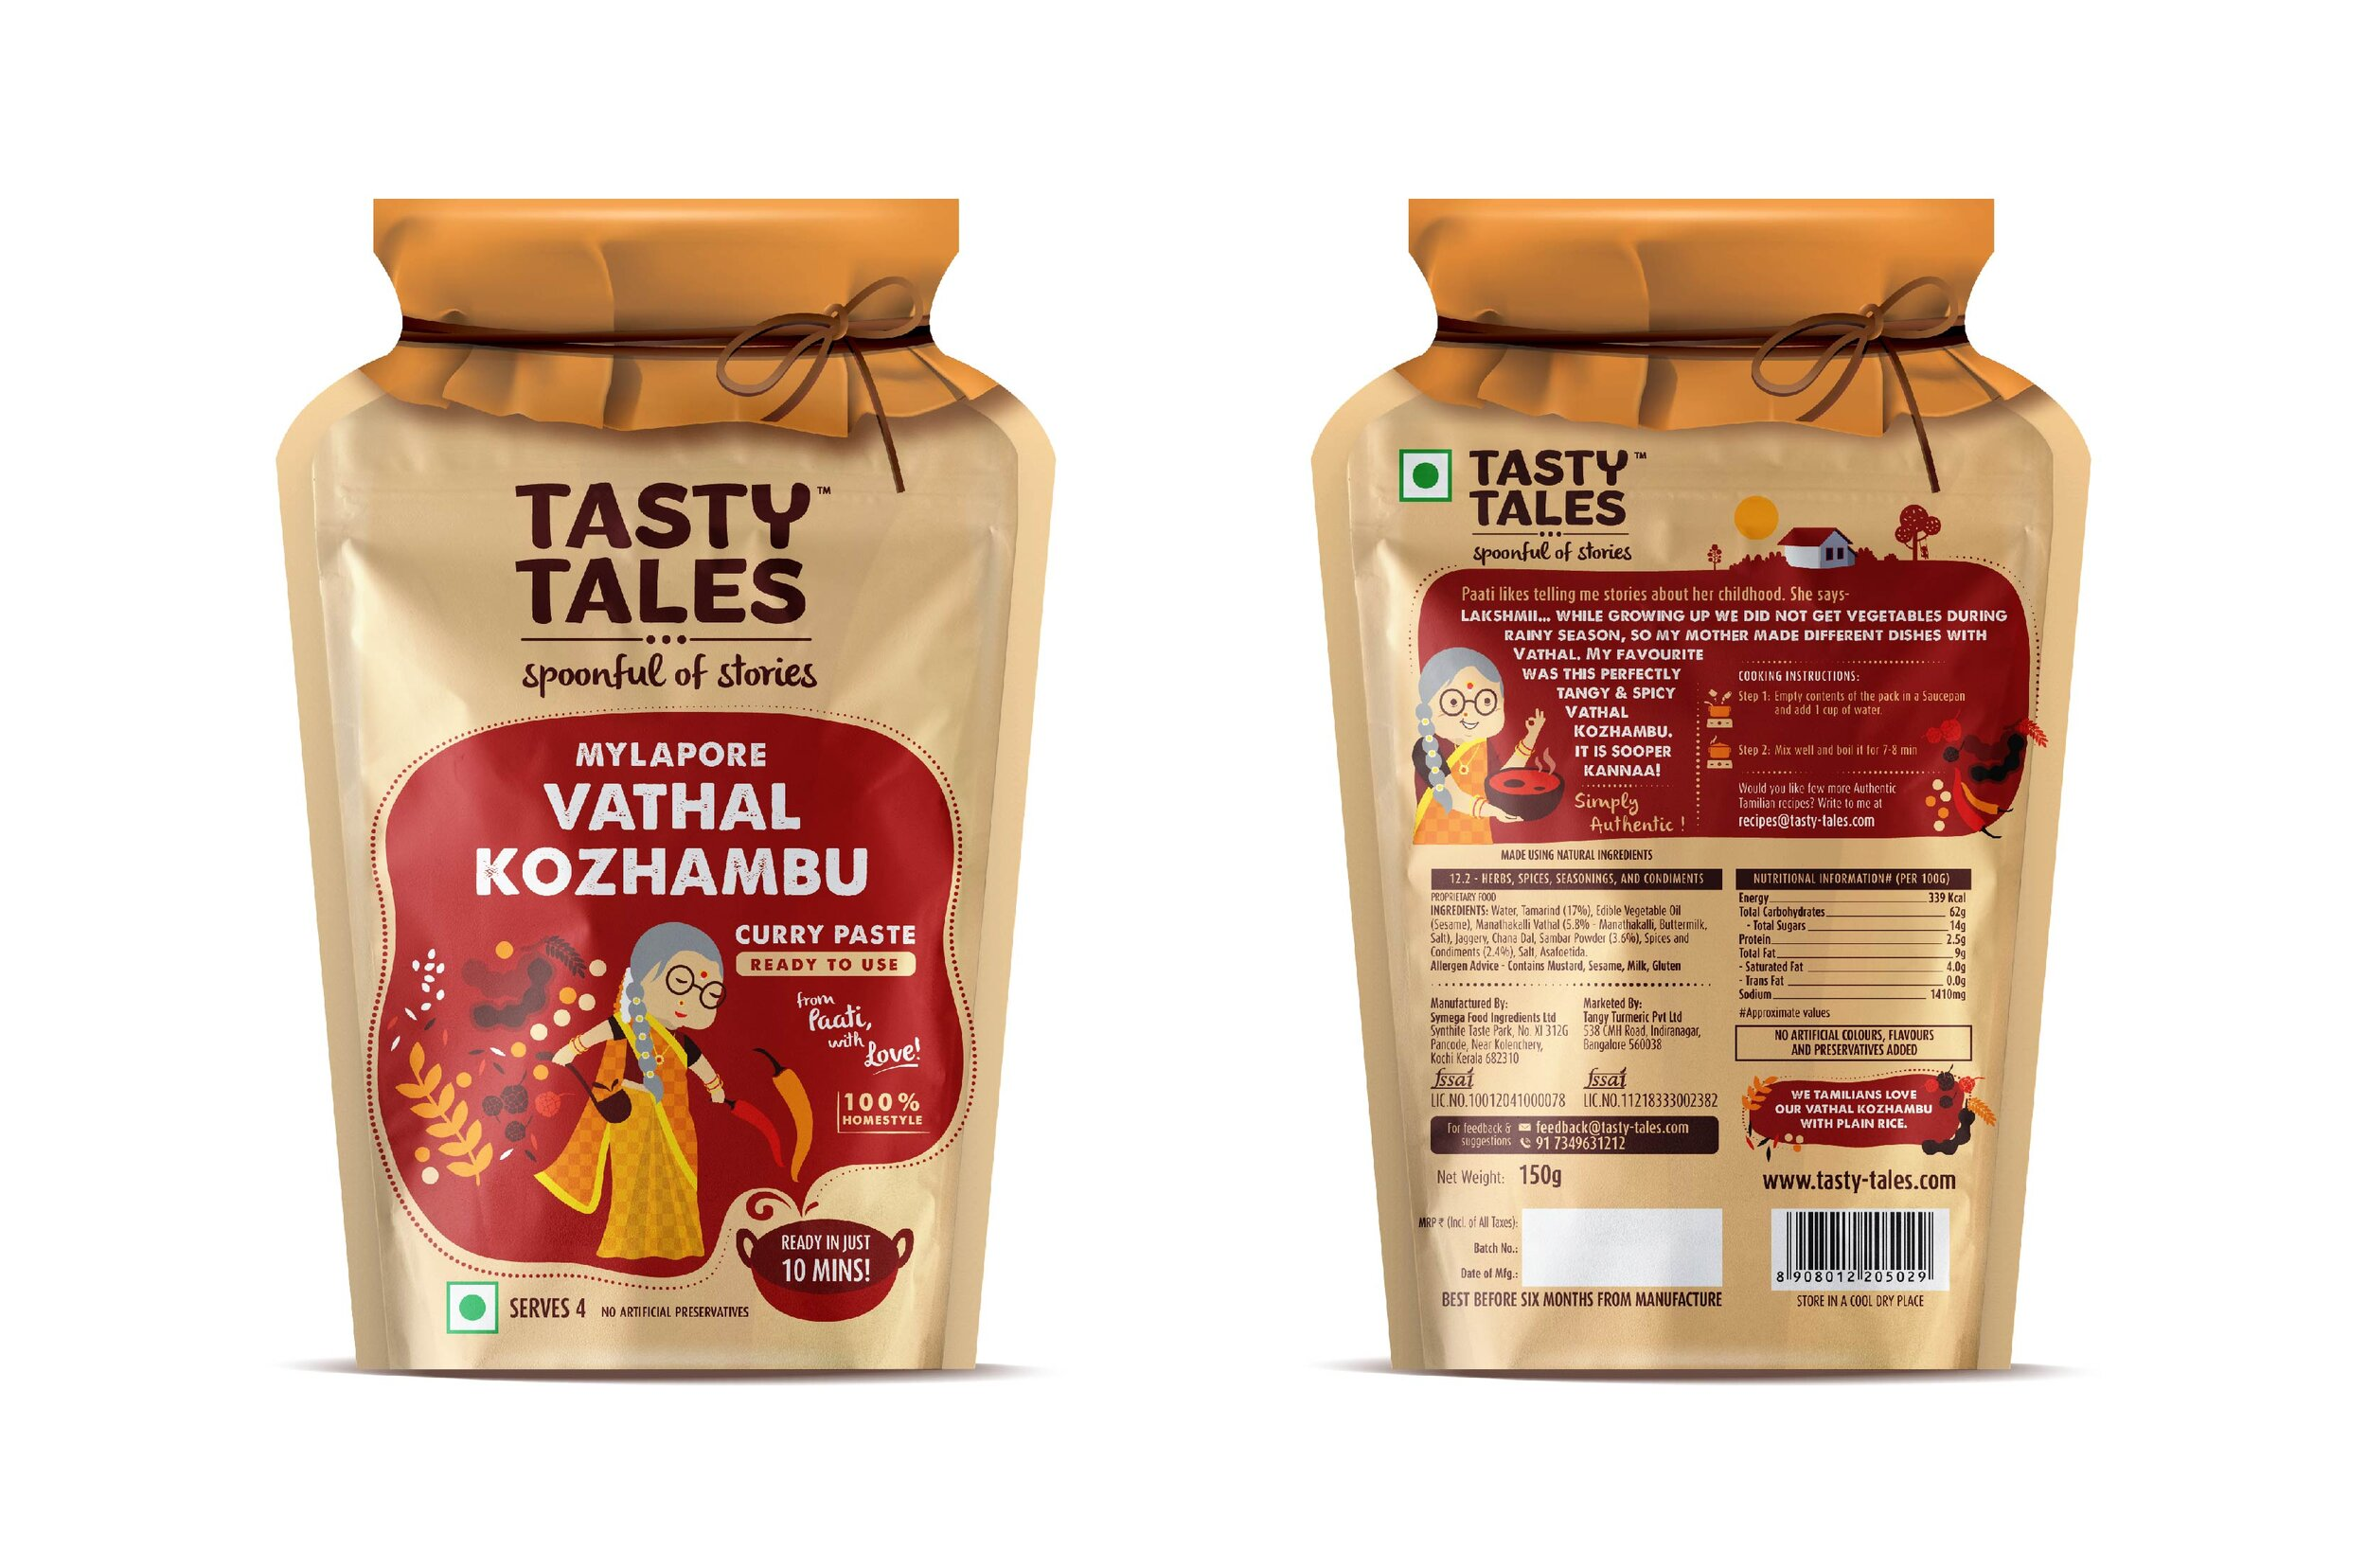 Tasty Tales_Packaging_Elephant Design 6.jpg